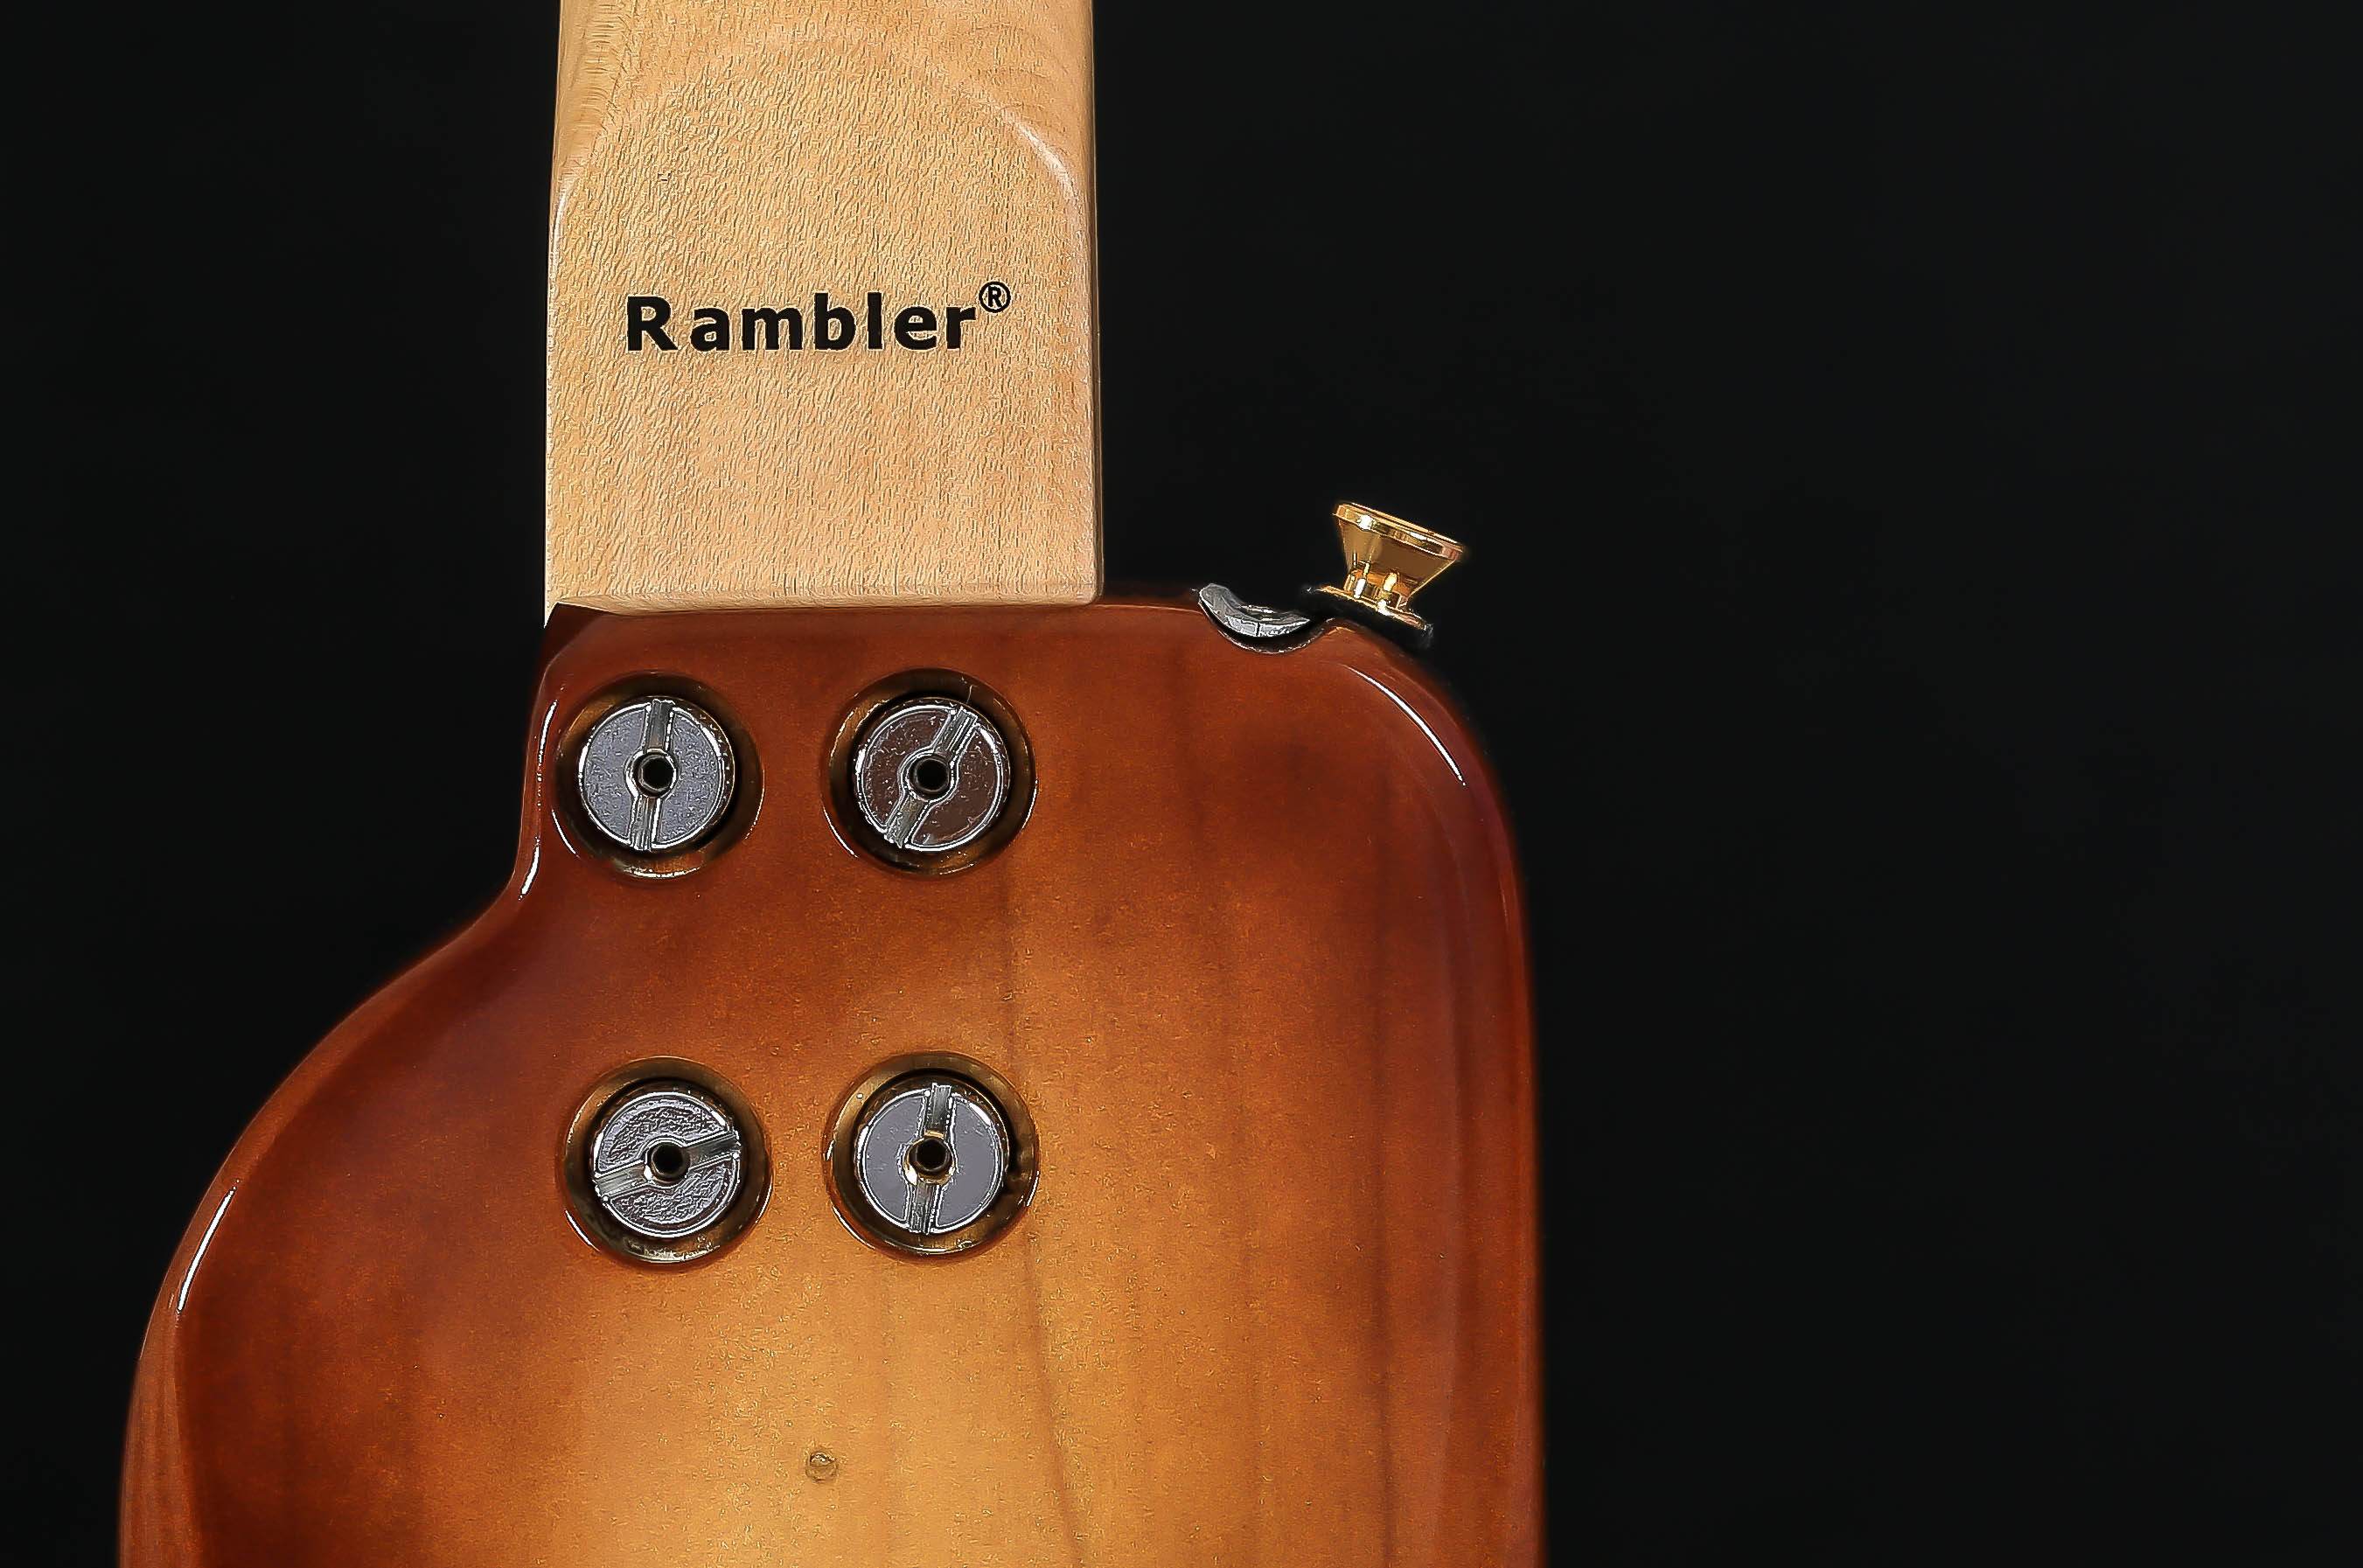 Rambler STROBELCASTER HoneyBurst Portable Guitar with Detachable Neck